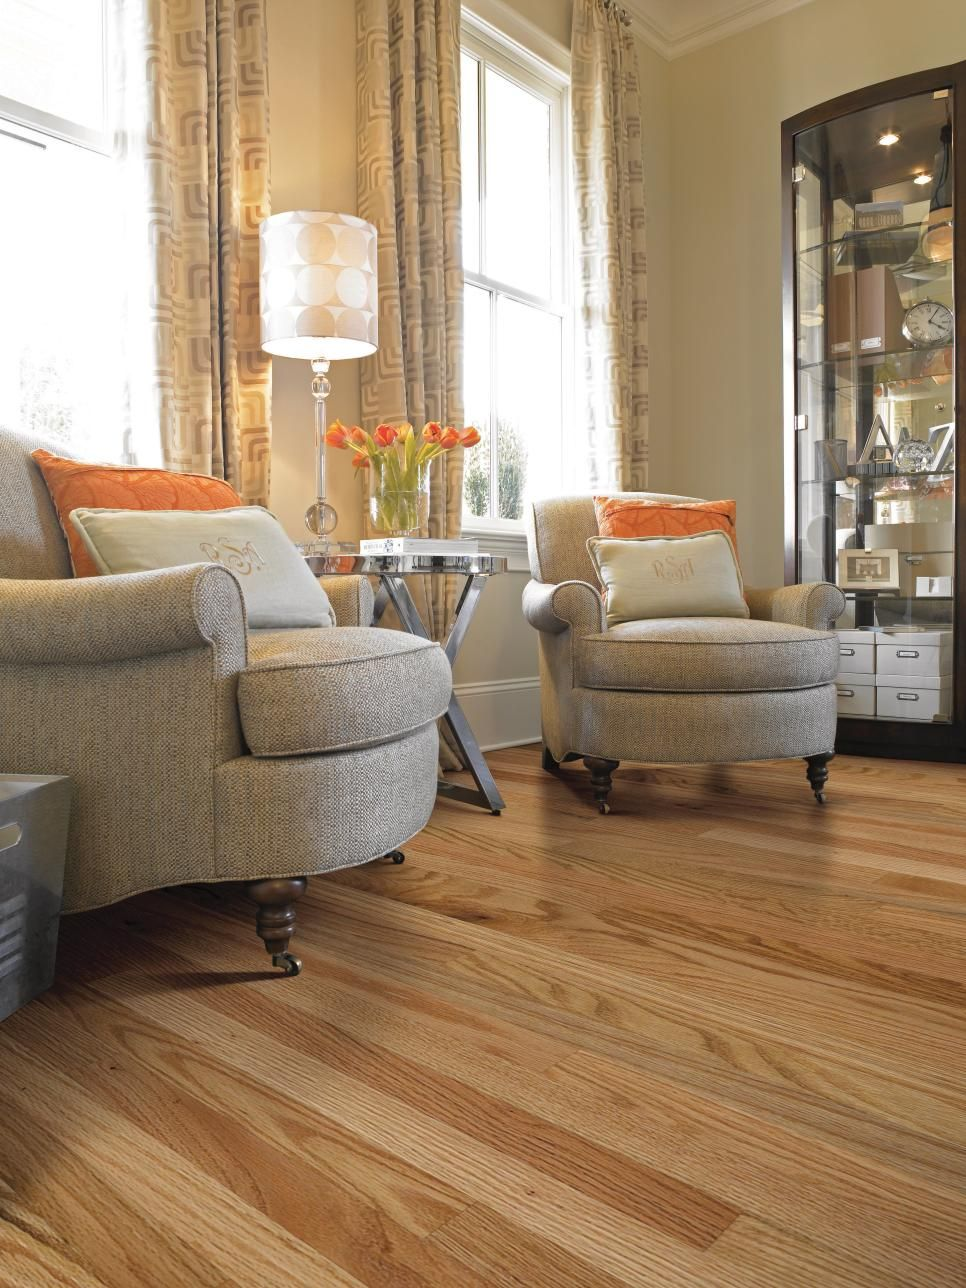 Red oak is one of the most popular flooring choices